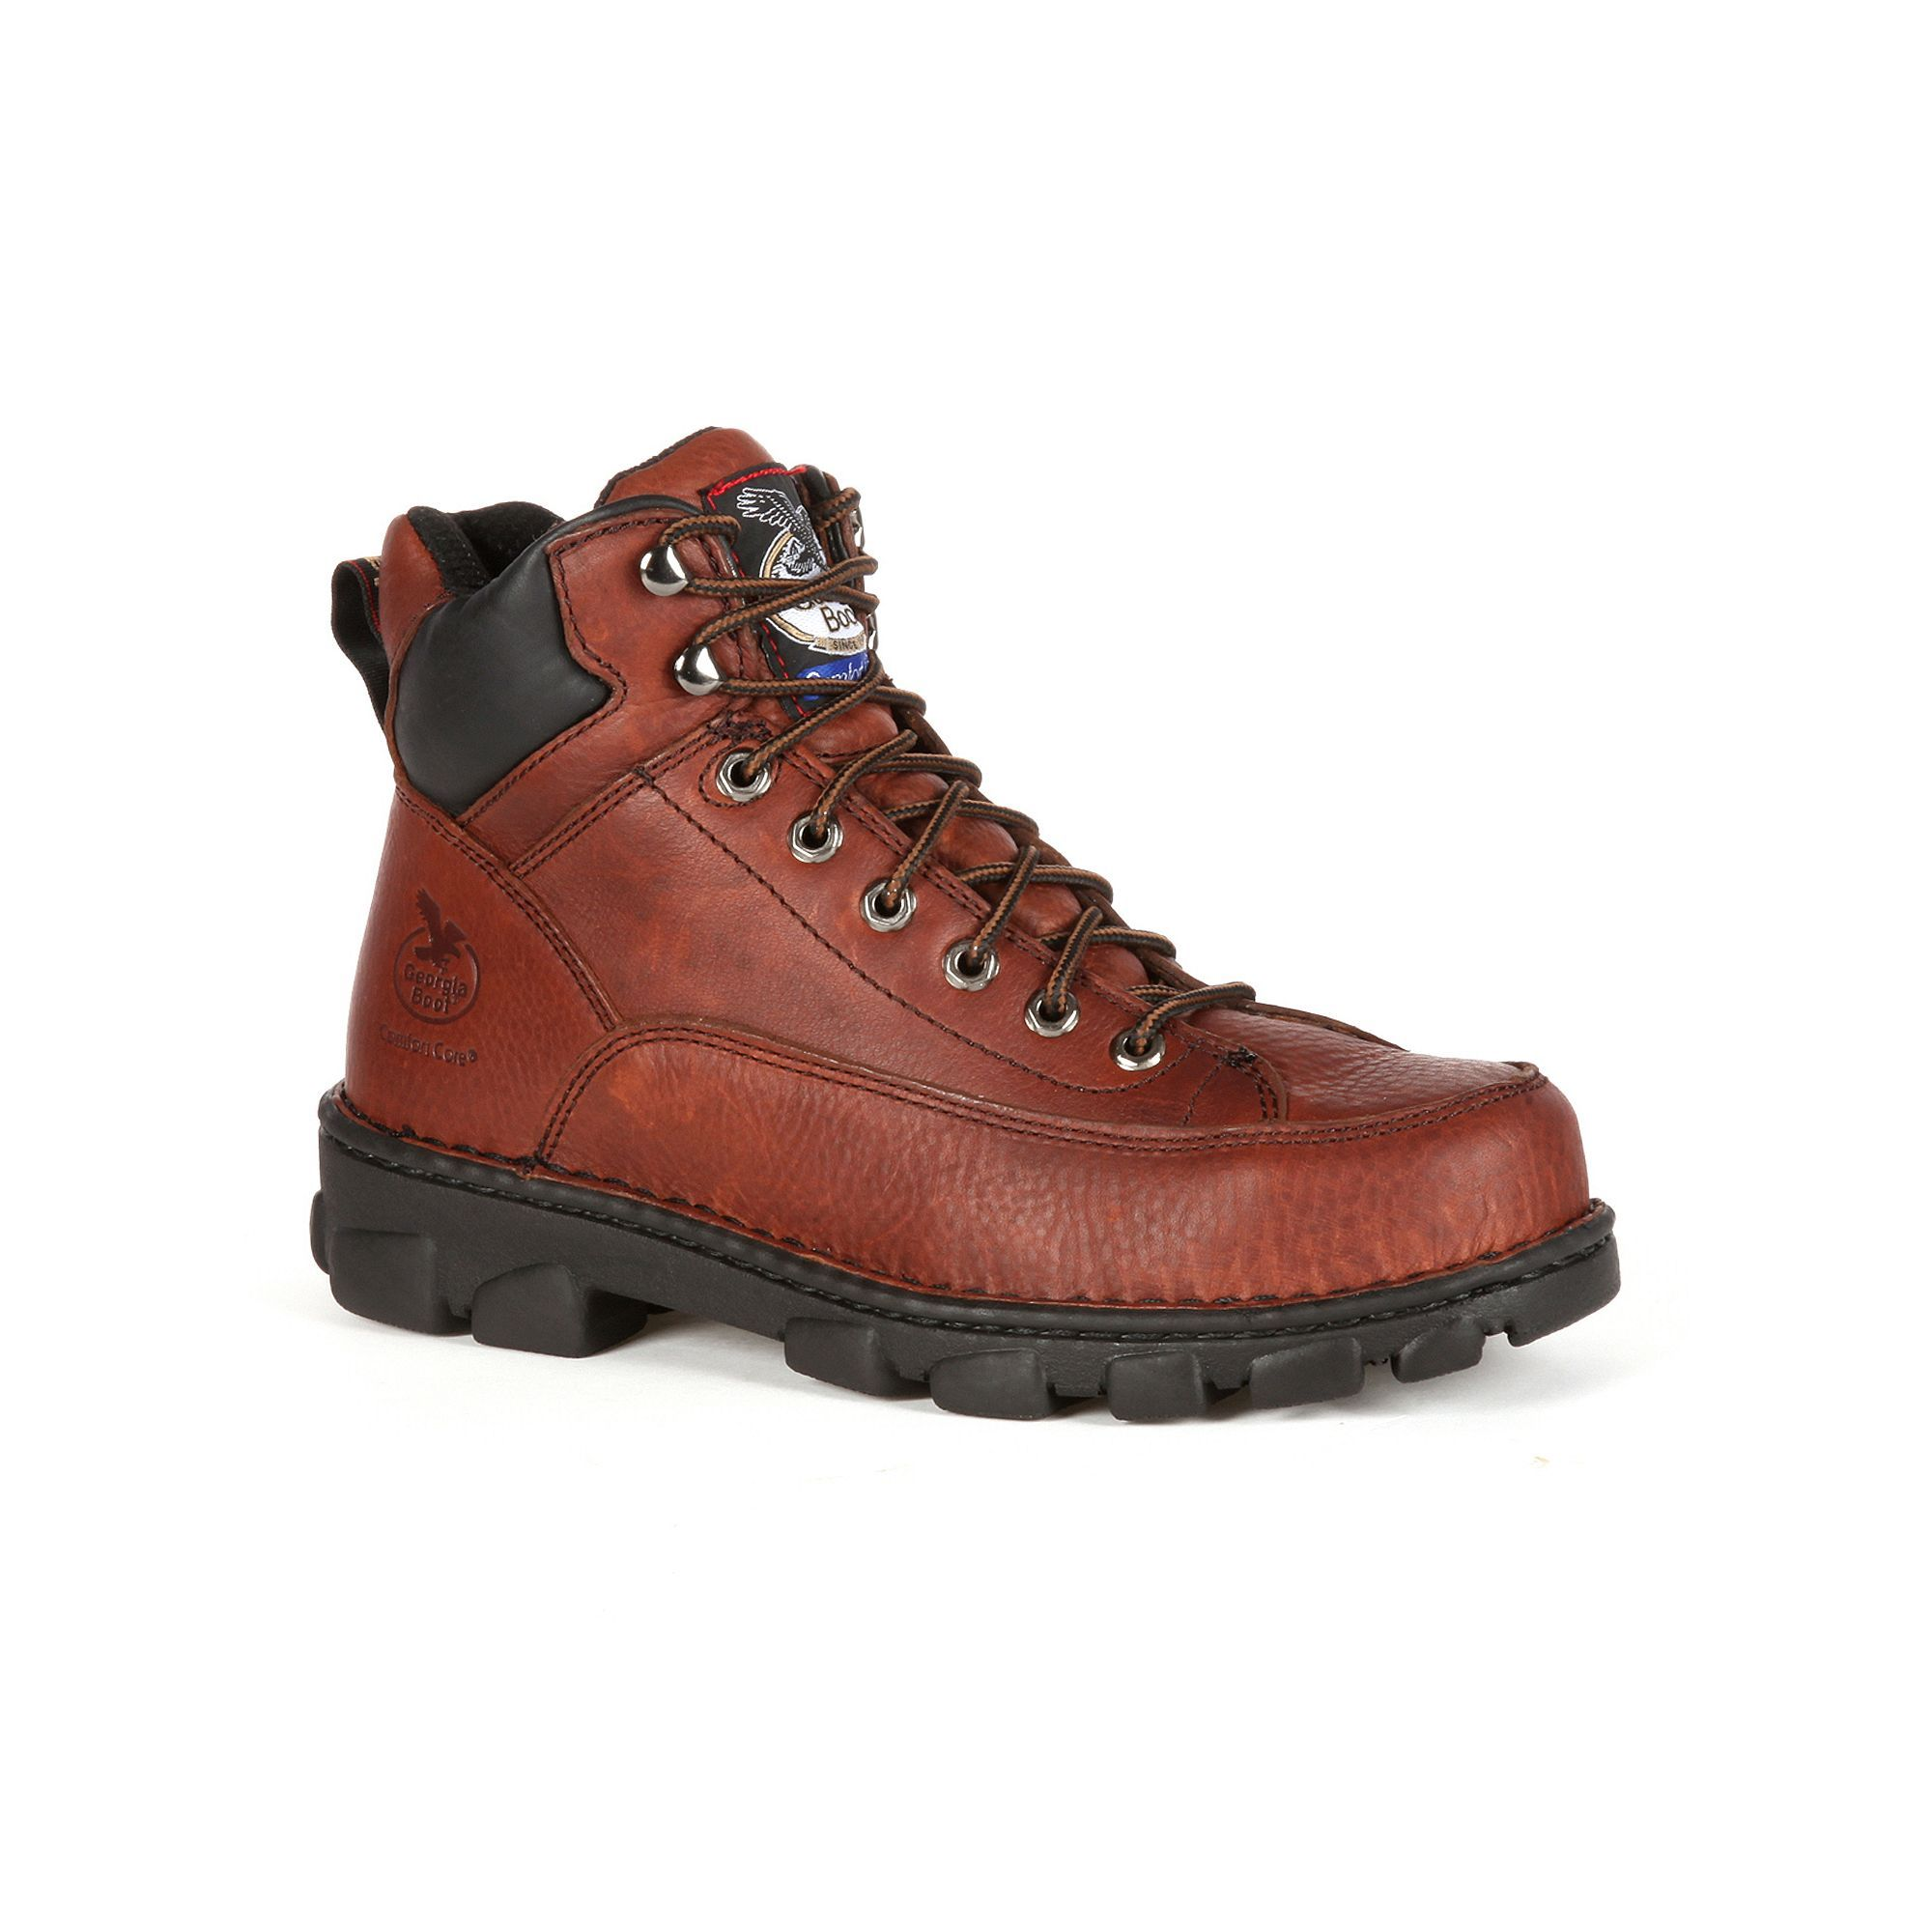 for sale the cheapest Georgia Boot Eagle Light Wide ... Load Men's 6-in. Steel-Toe Work Boots comfortable sale online DffnZQe3Y